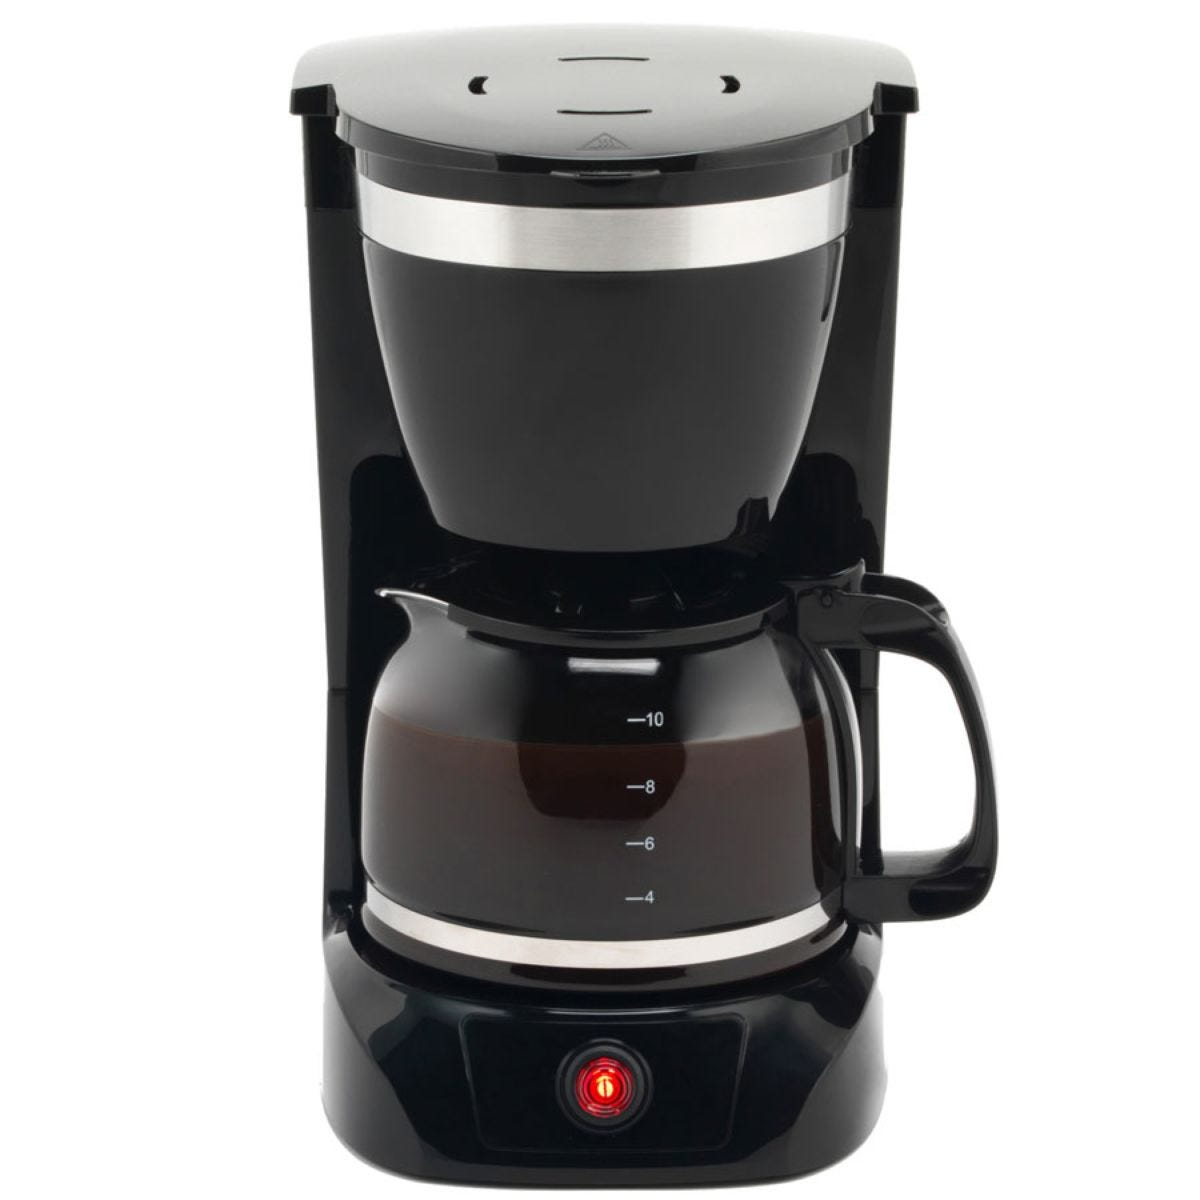 USB Electronic Coffee Cup Warmer Plate Black | at Mighty